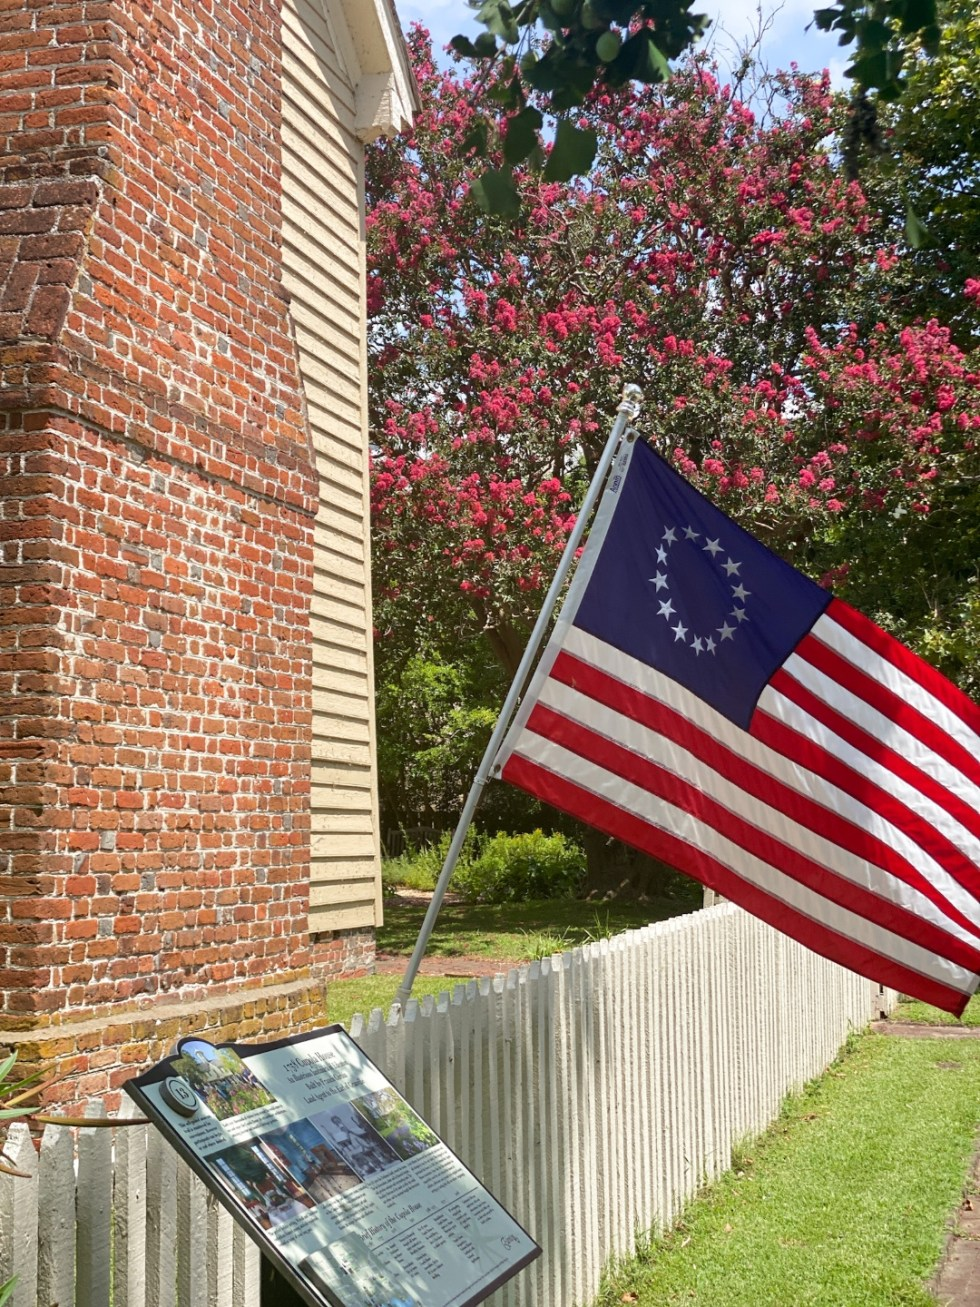 Top 10 Best Things to Do in Edenton, NC: A Complete Travel Guide - I'm Fixin' To - @imfixintoblog | Edenton Travel Guide by popular NC travel guid, I'm Fixin' To: image of a colonial flag next to a historical sign.